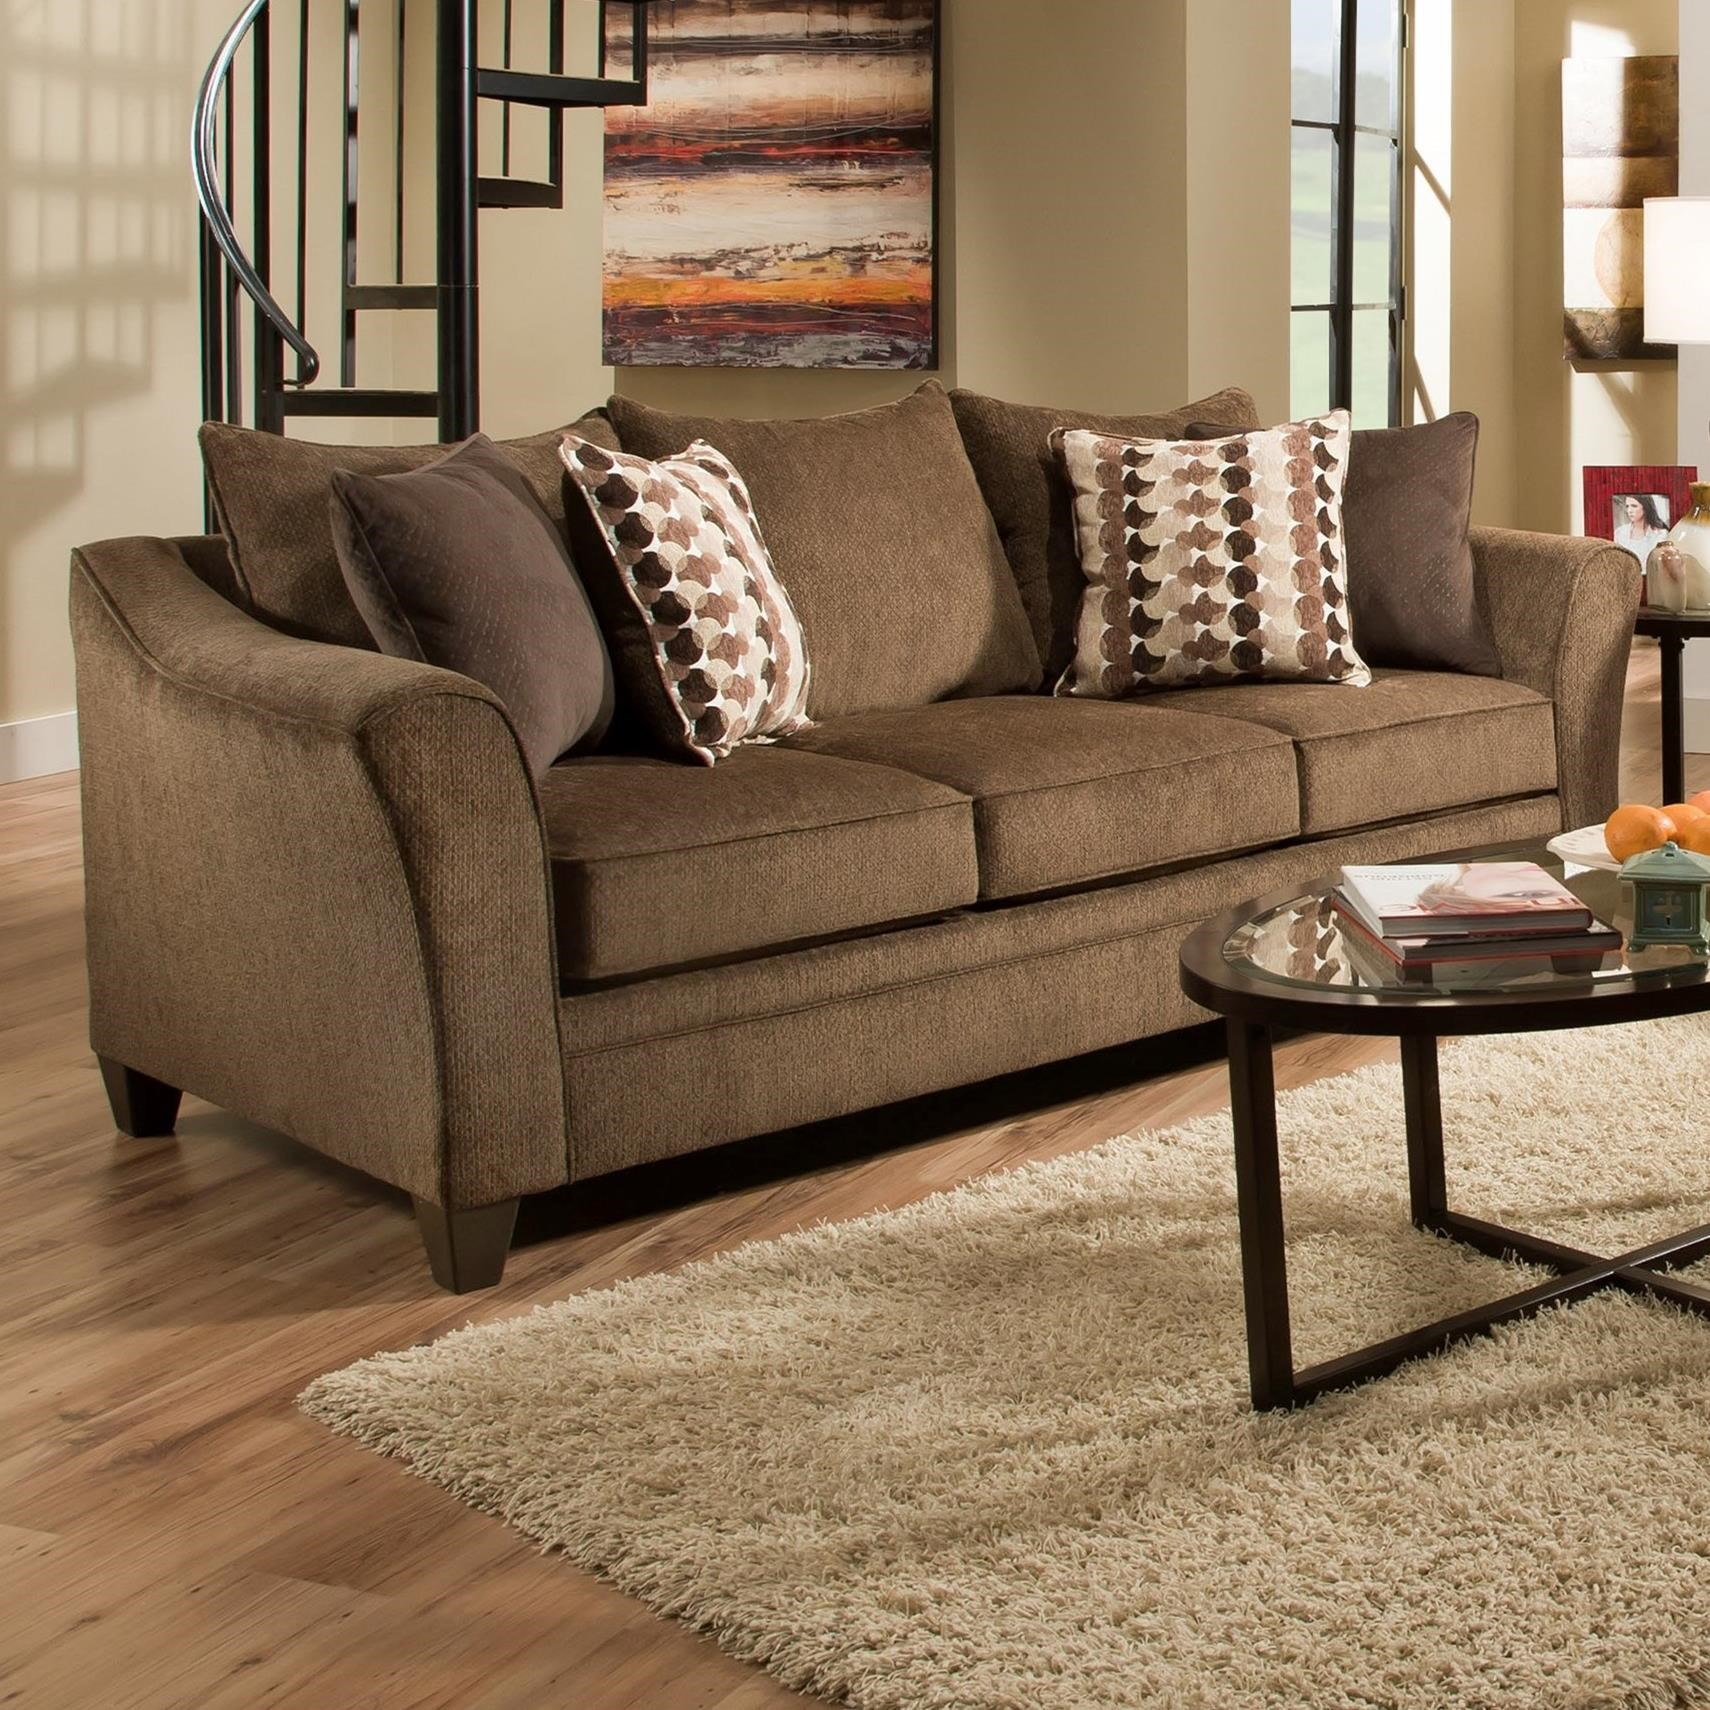 United Furniture Industries 6485 Transitional Sofa - Item Number: 6485Sofa-AlbanyChestnut